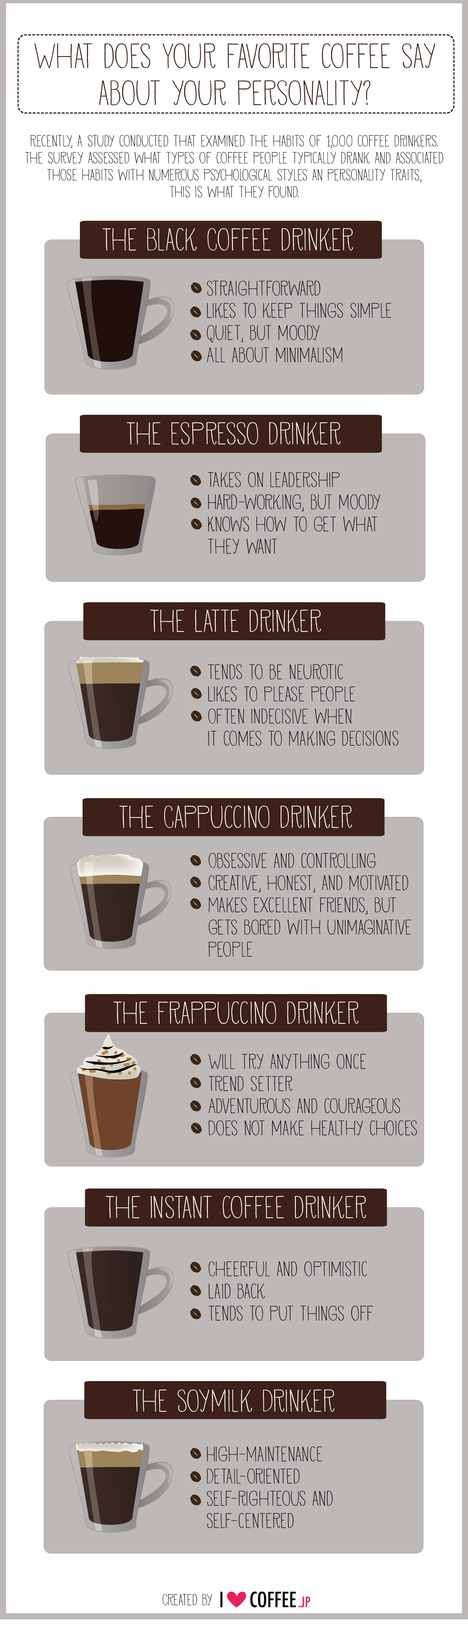 What Does Your Favourite Coffee Say About Your Personality?